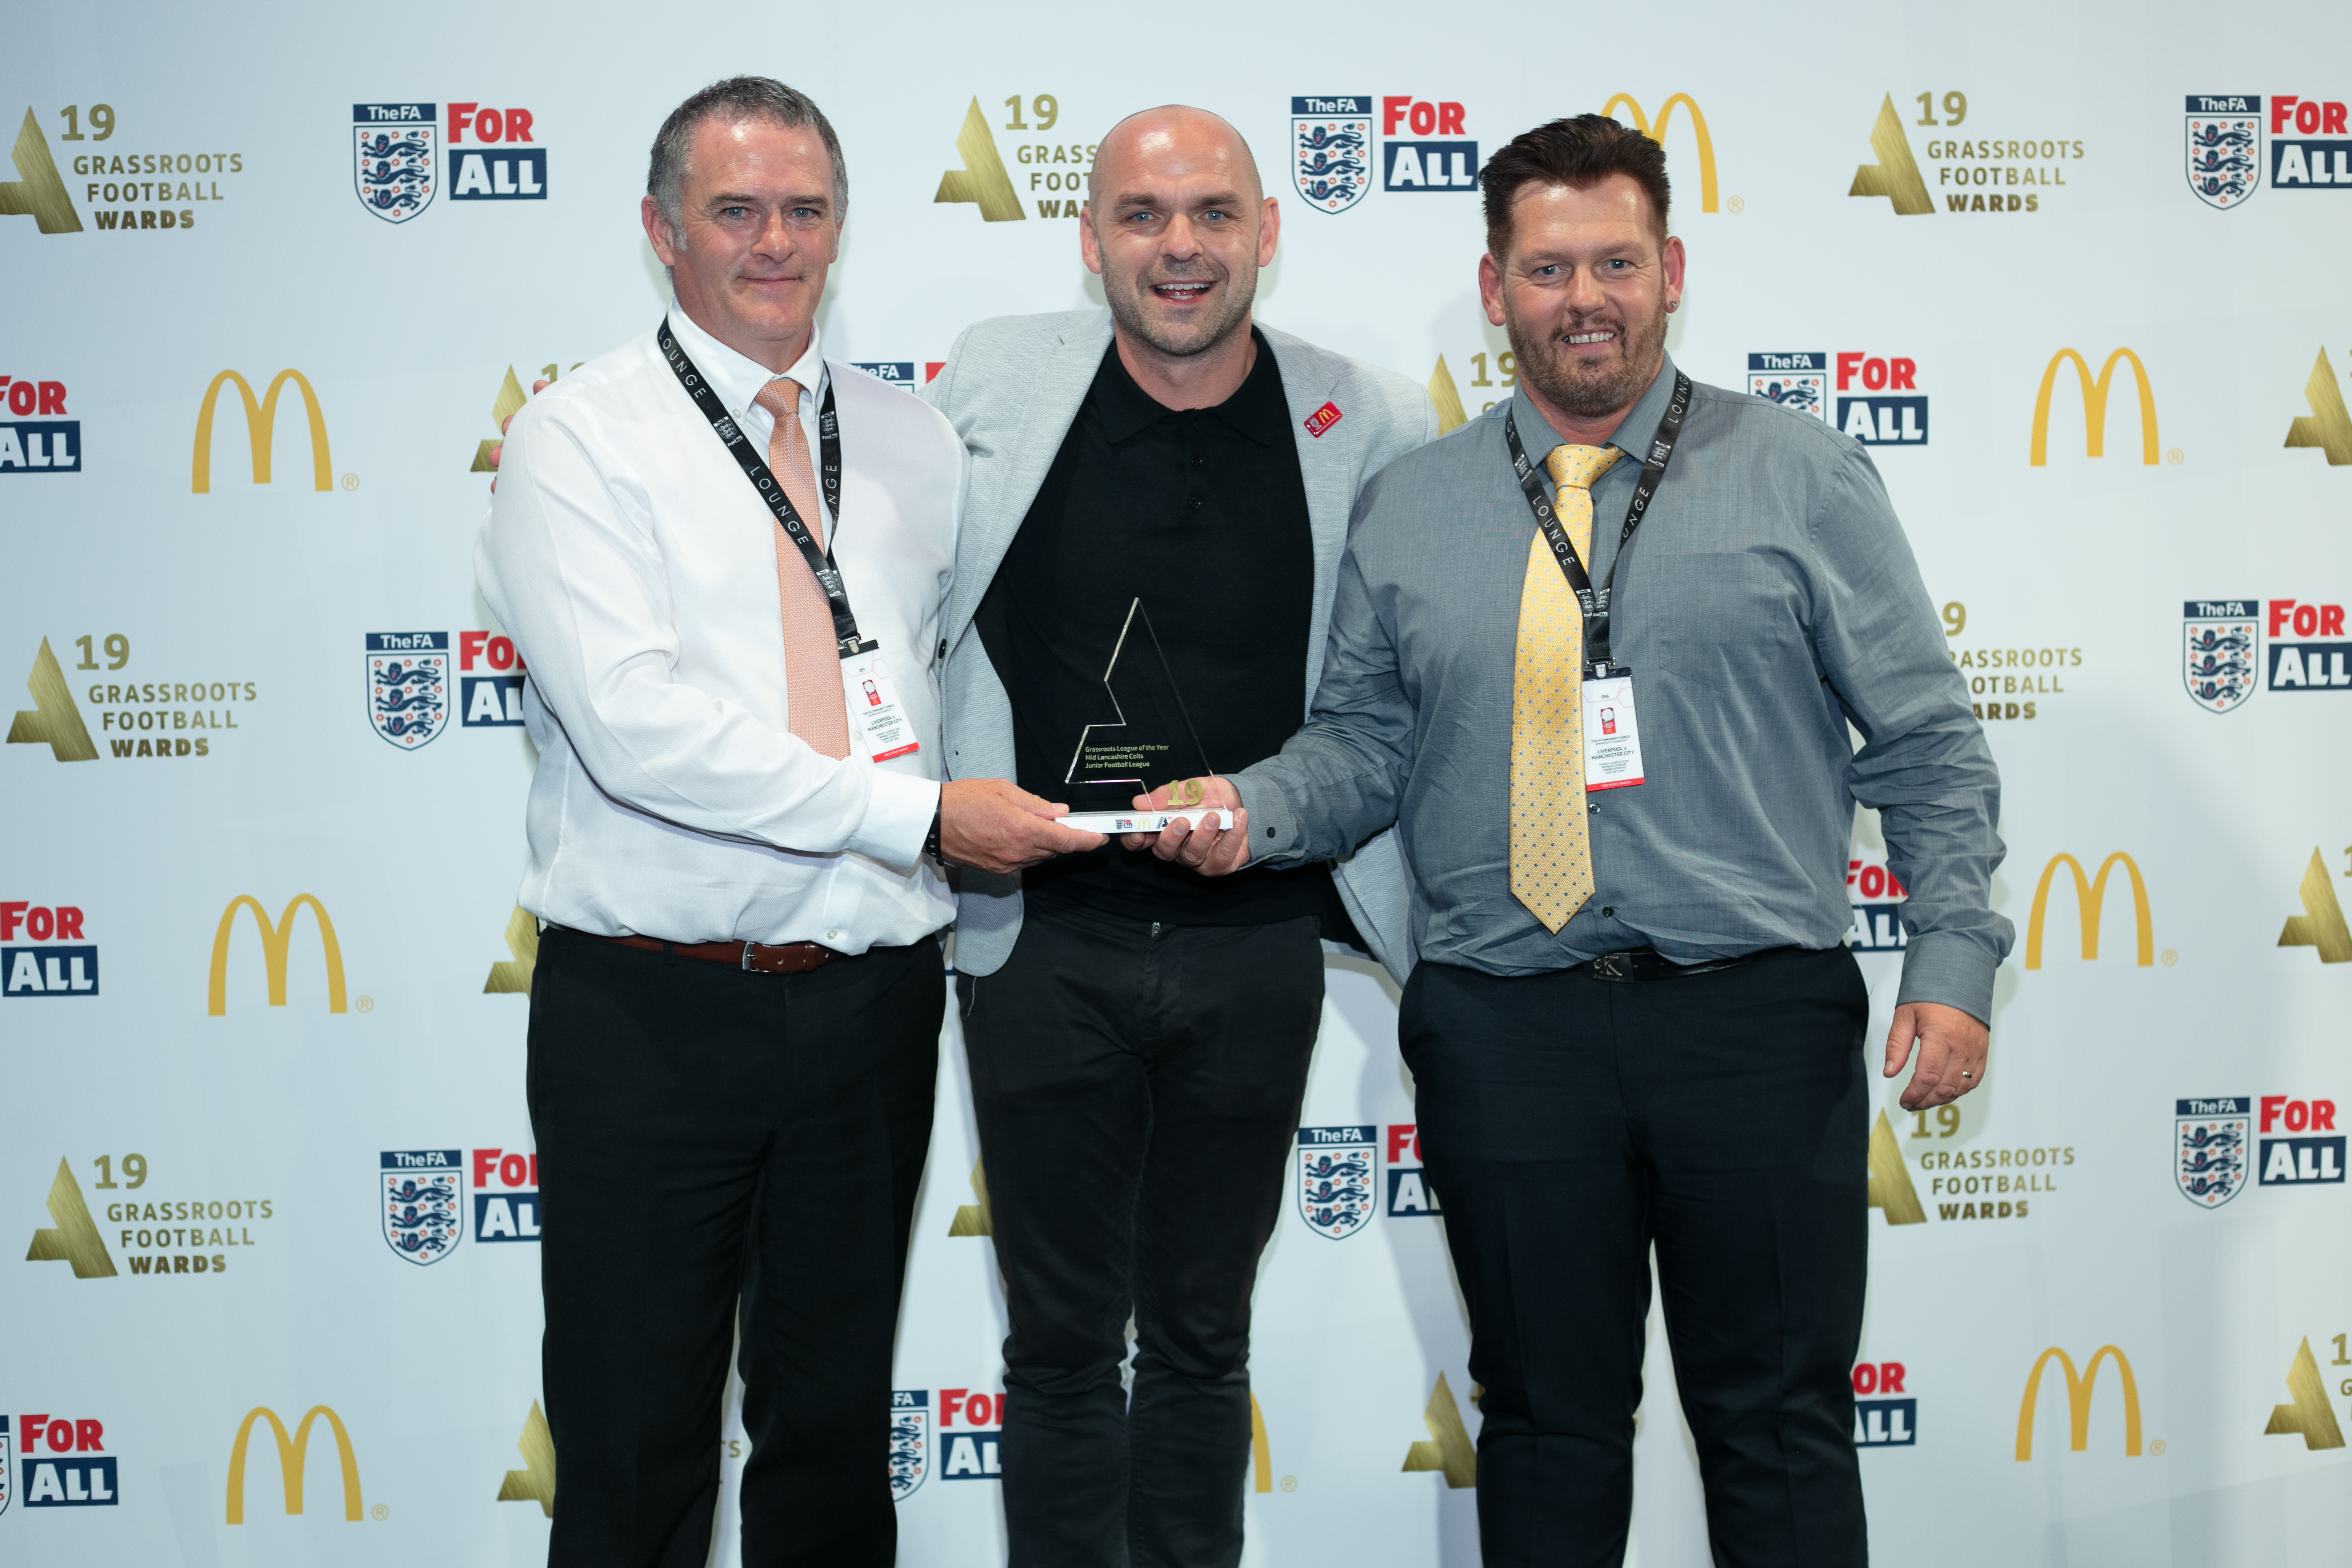 League Secretary Ian Christopher (Left) and Kevin Kealey (Right) receiving the award from Danny Murphy